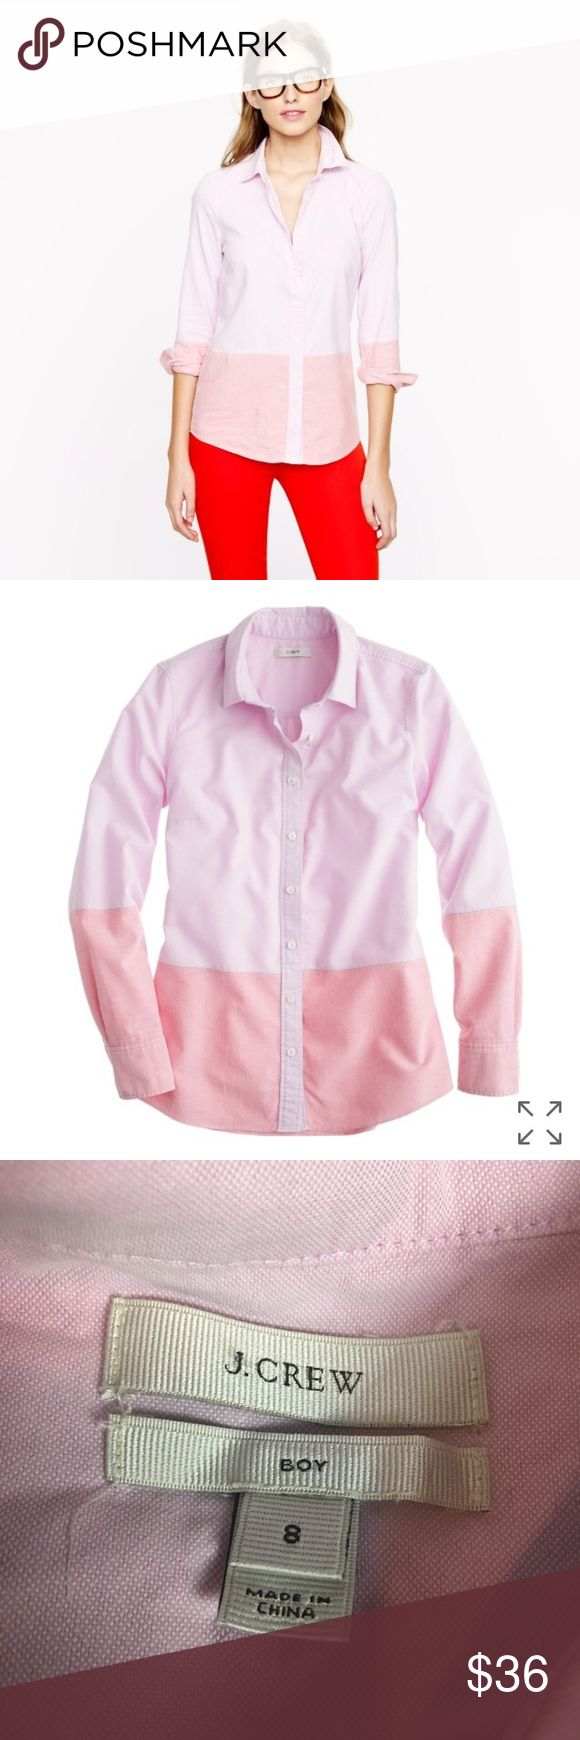 J. Crew boy shirt colorblock oxford button up J. Crew  Size 8 Retails for $88  Pink Colorblock Oxford Boy Shirt  Button Down Top long sleeve  Measurements are taken flat and are approximate. Please compare to your own to insure fit  • 25 inches total length from shoulder  • 25 inches sleeve length from shoulder  • 19 inches width pit to pit  • 15.5 inches width shoulder seam to shoulder seam on back  Color may vary slightly from what is on your screen to the items actual color. J. Crew Tops…